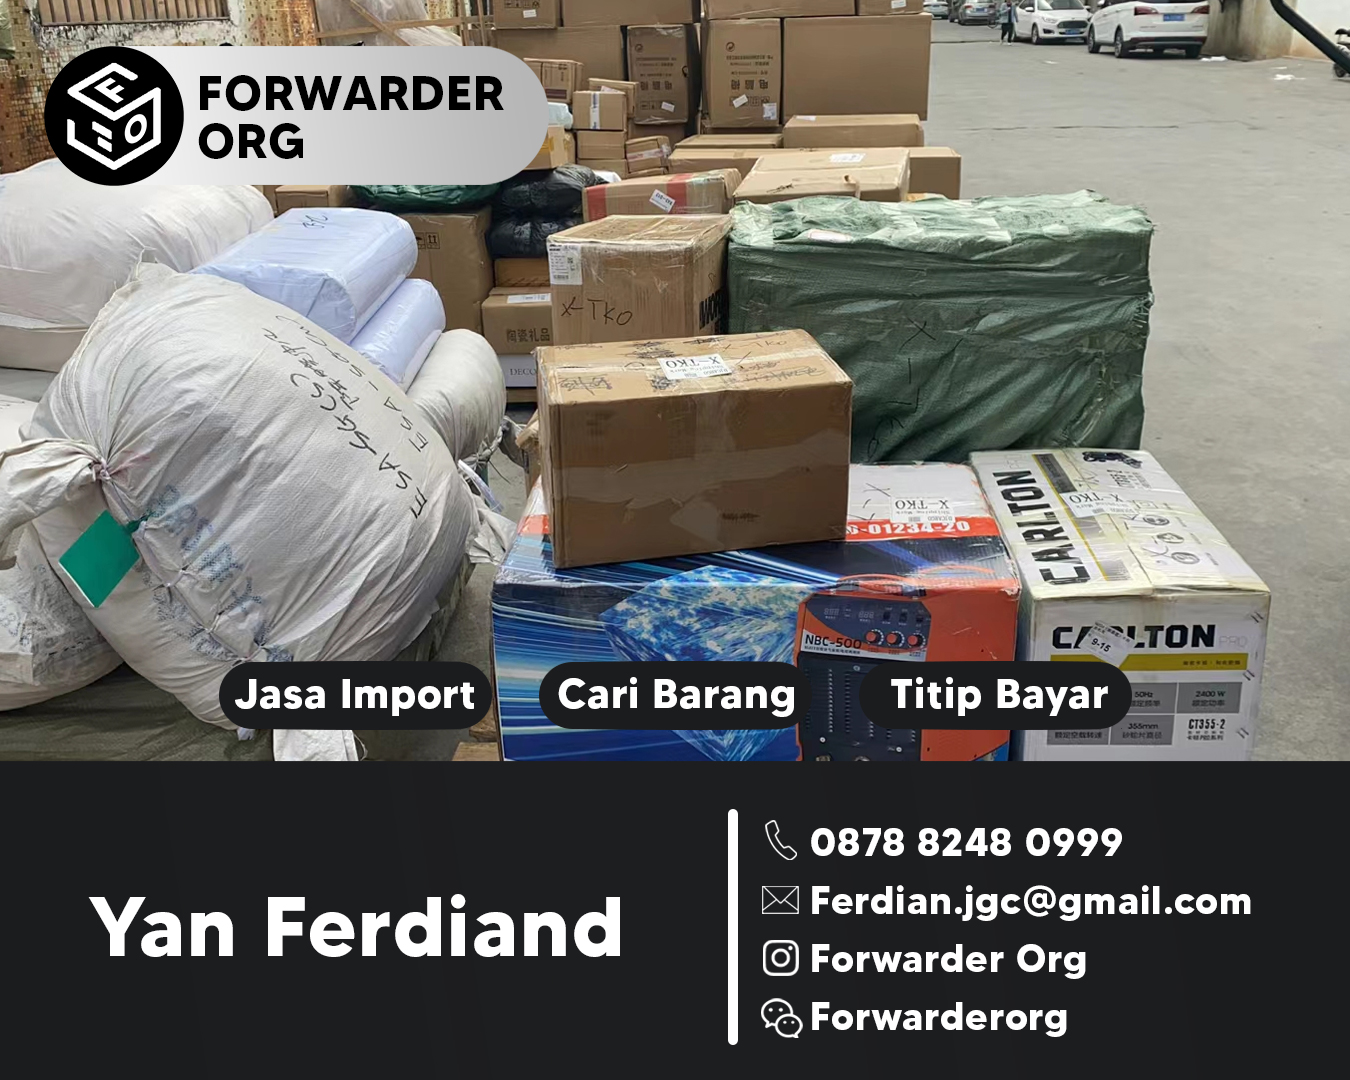 Jasa Forwarder Solusi Import China Indonesia | FORWARDER ORG